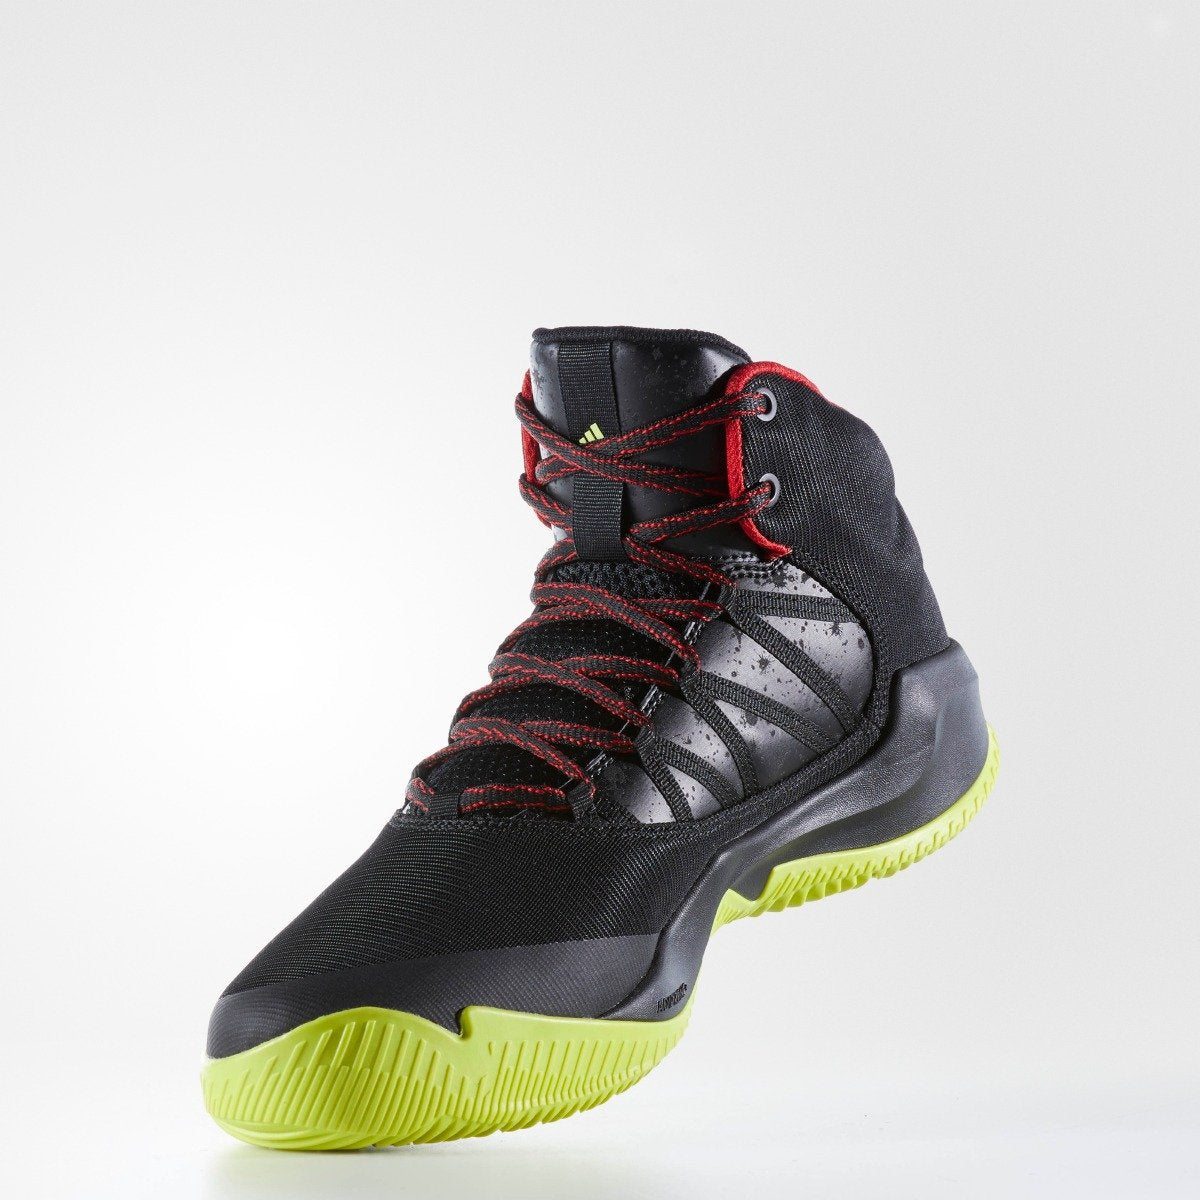 3c79eedf2e4 Men s adidas Originals Ball 365 Infiltrate Basketball Shoes Black with  Yellow and Red. 1